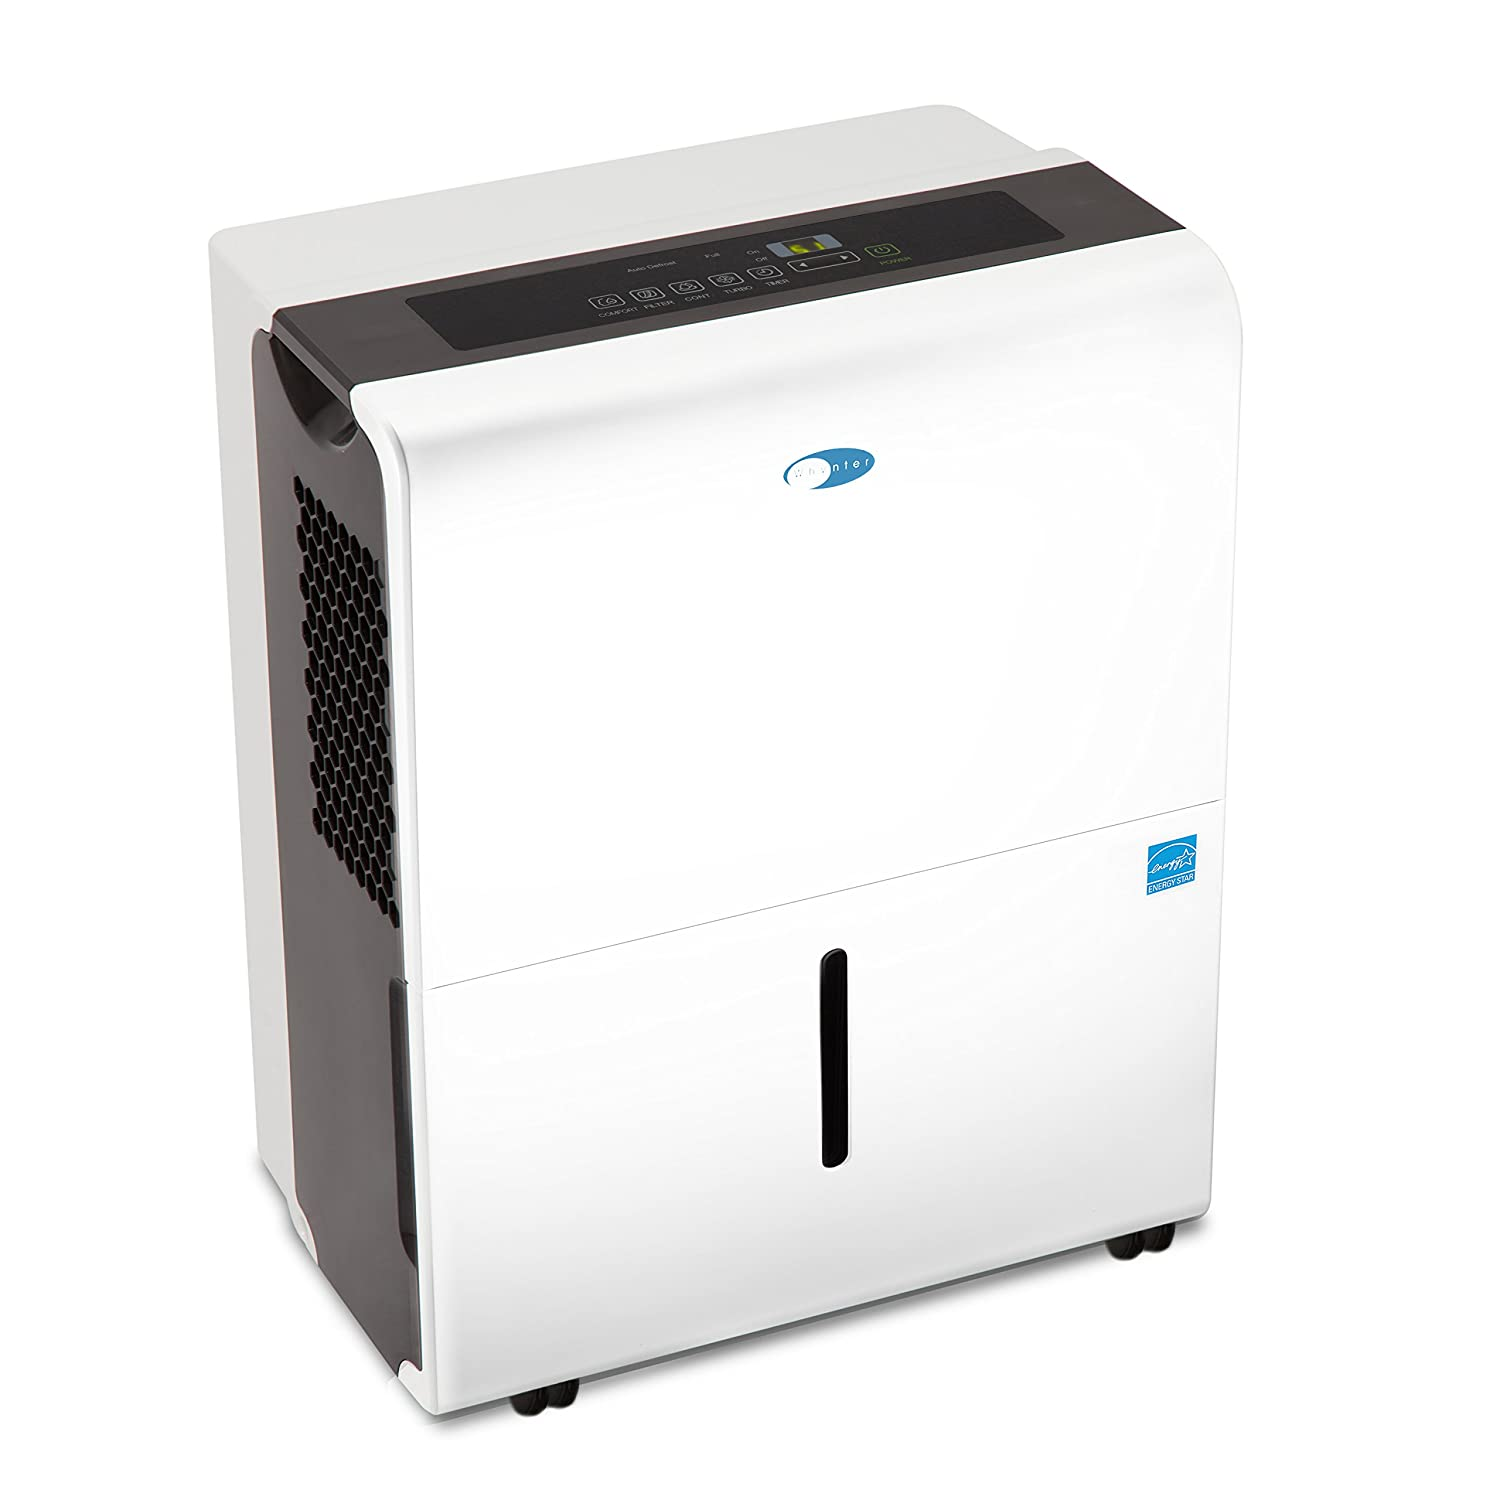 Whynter D Energy Star 30 Pint Portable Dehumidifiers - Elite Series Multi